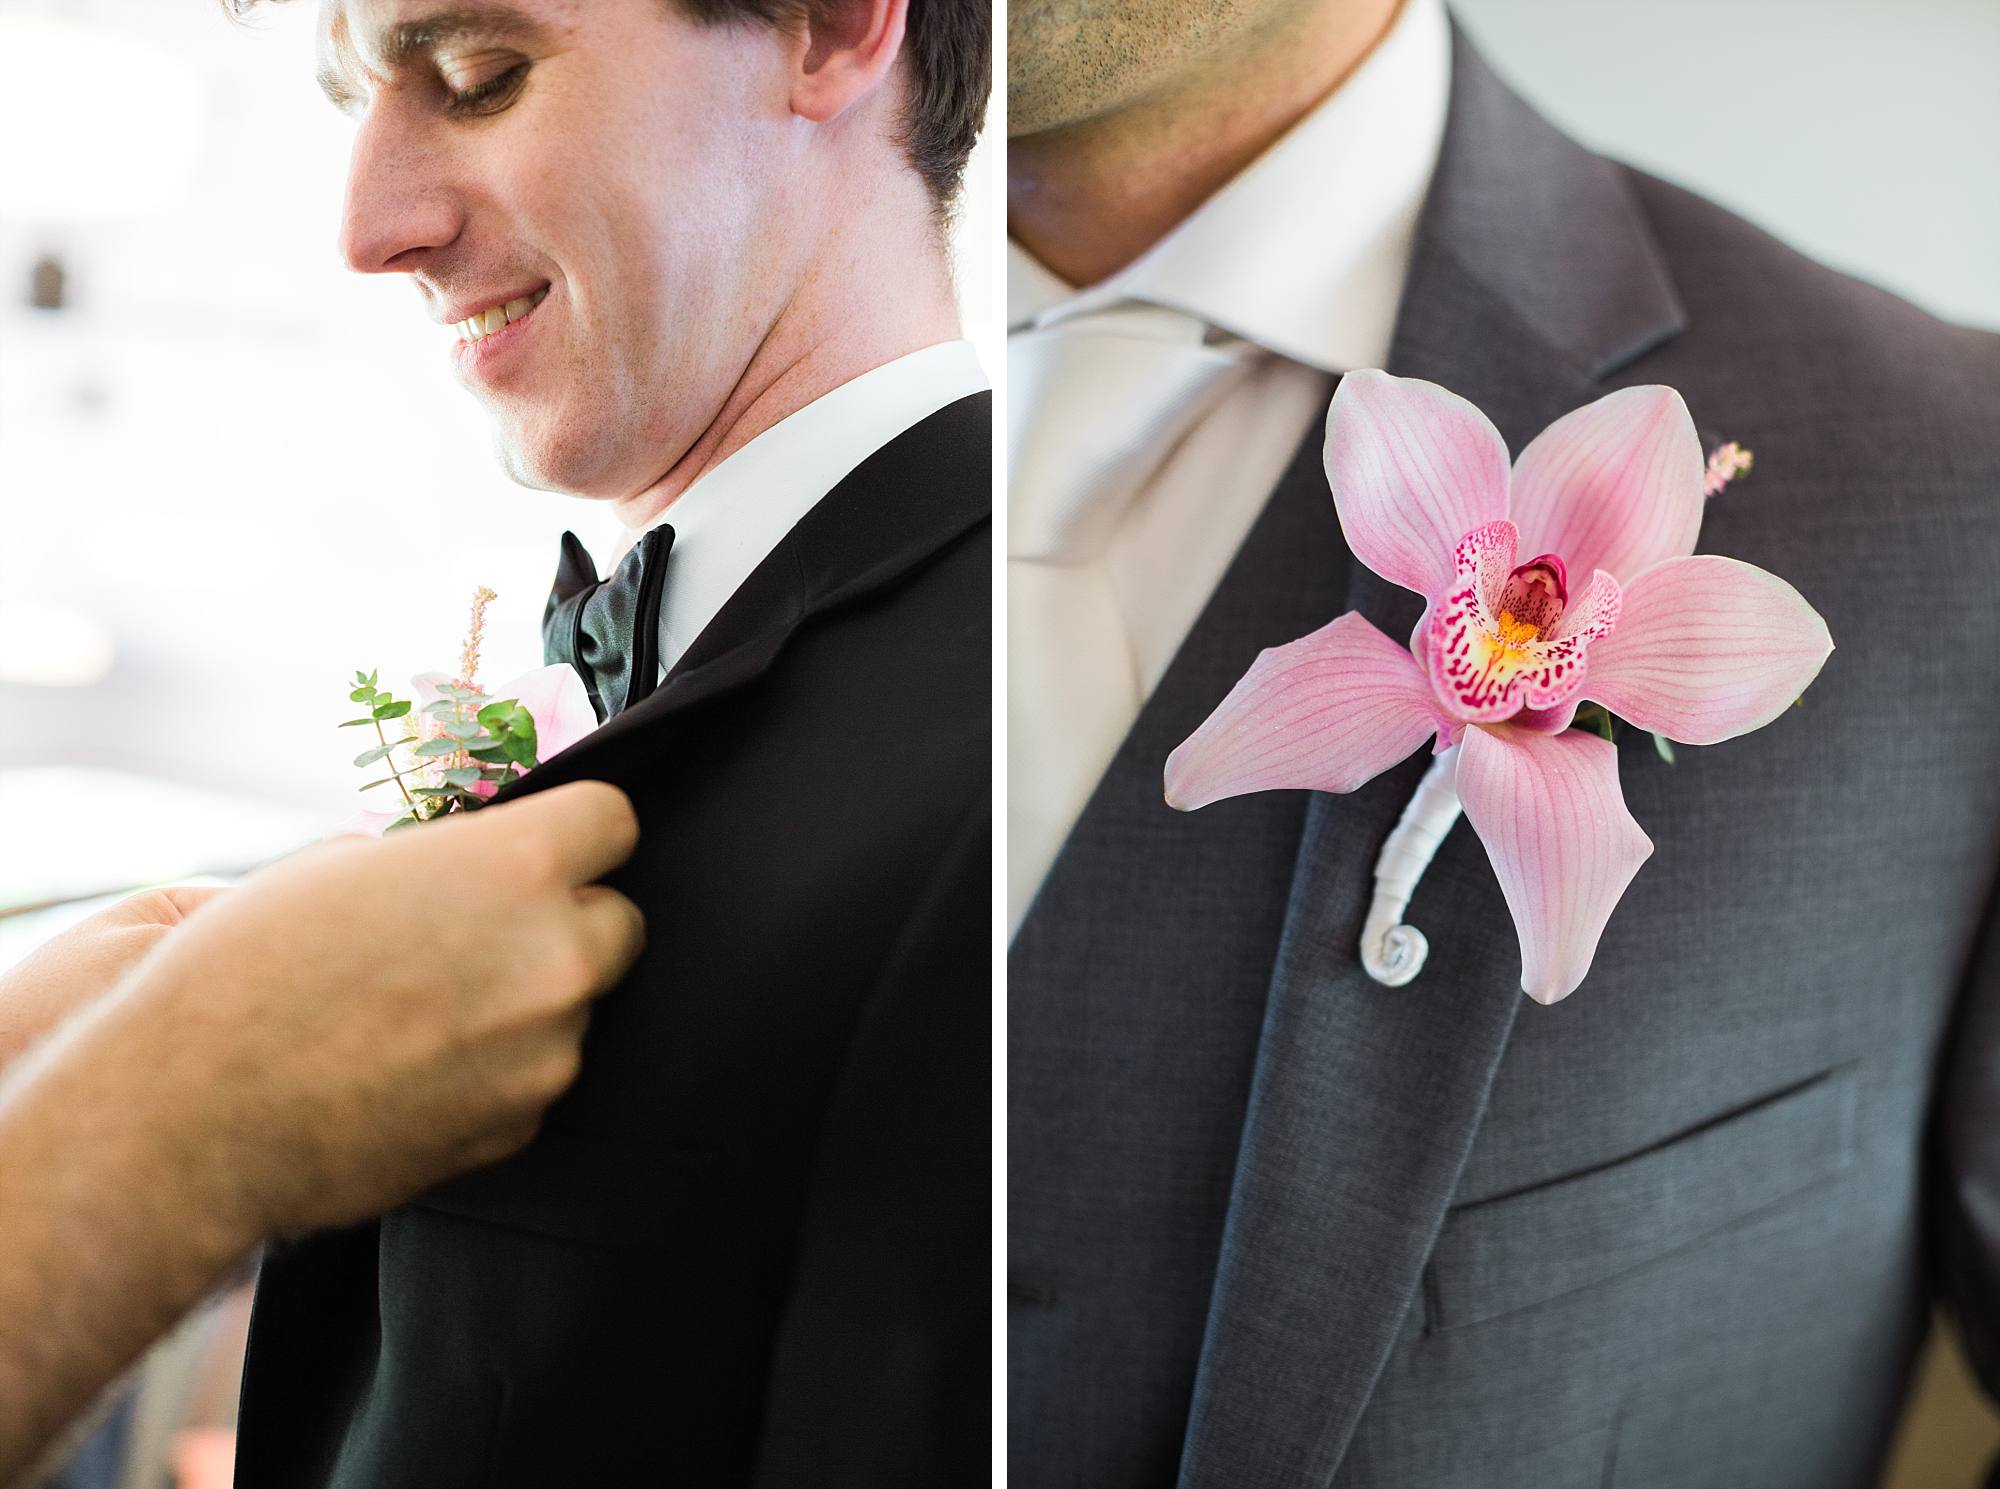 groom getting pink plumeria bouteneer